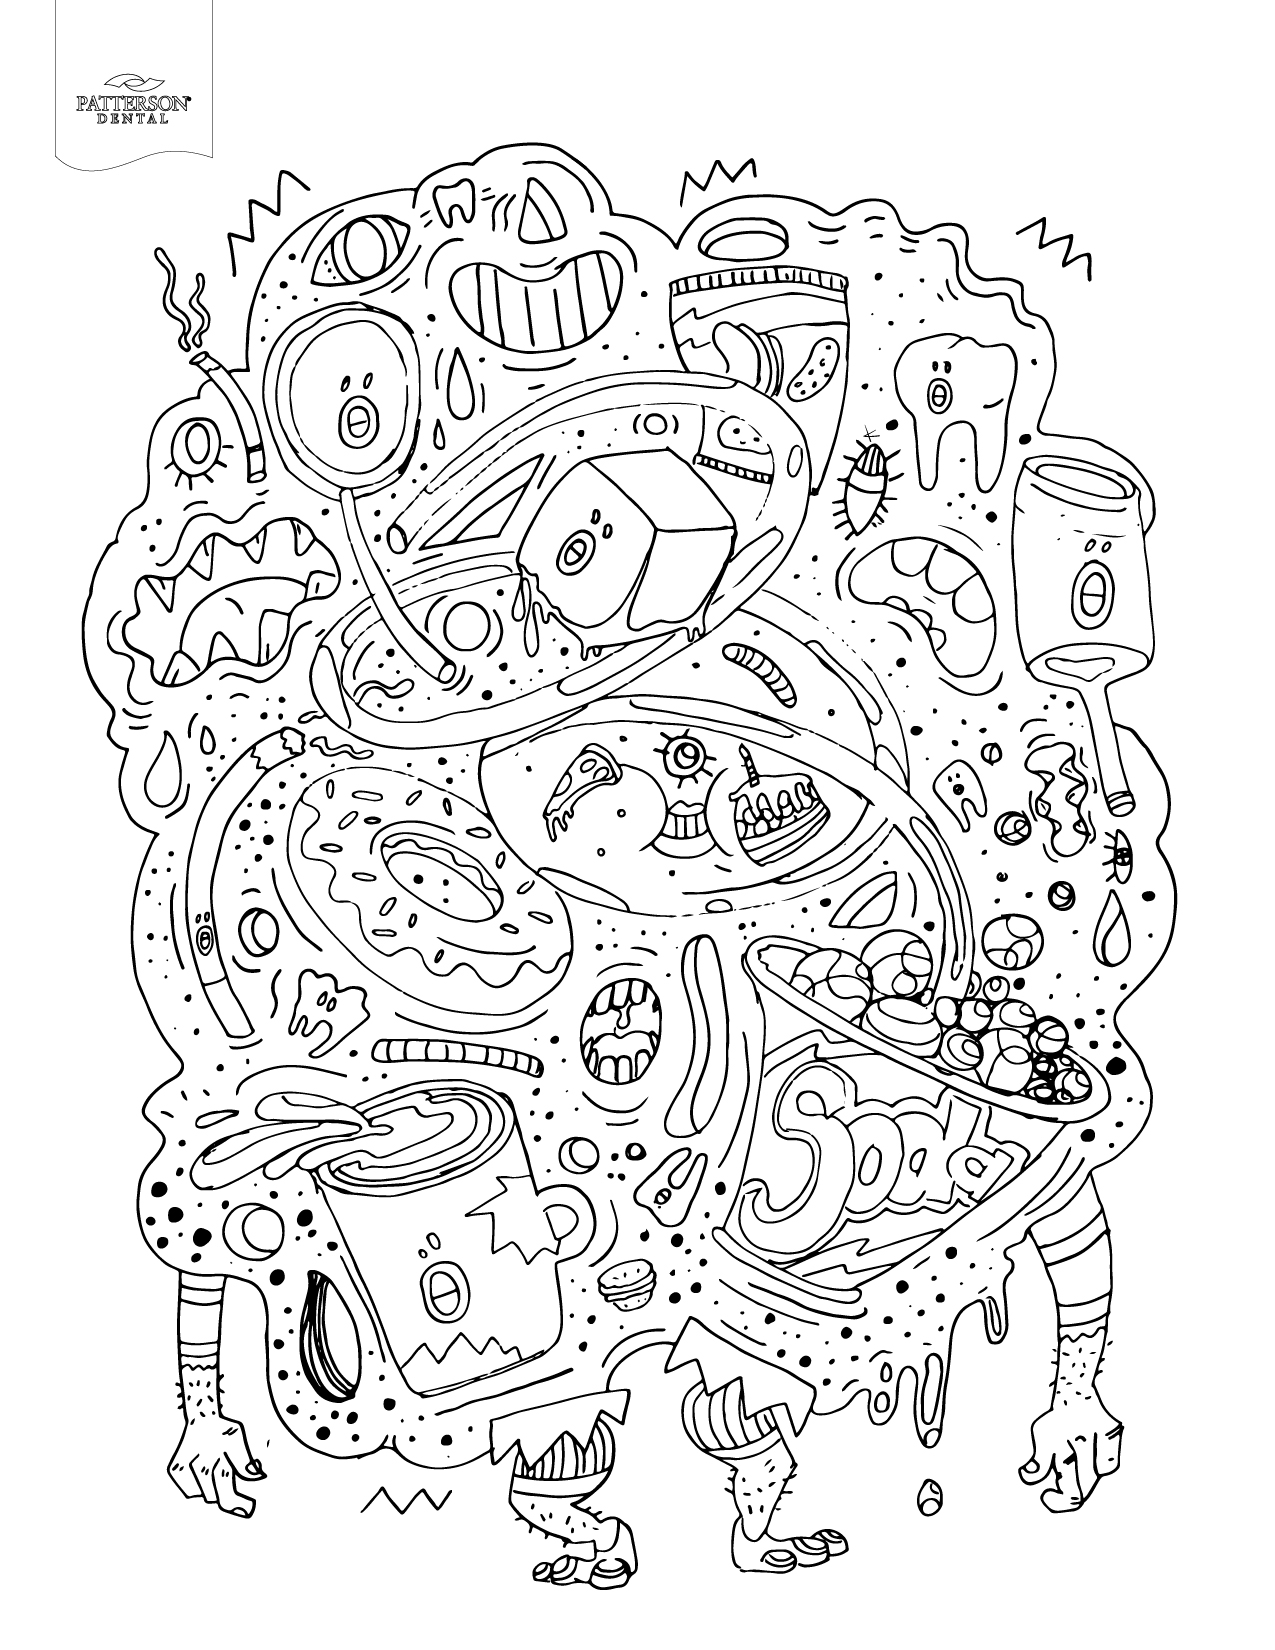 Junk Food Monster Coloring Page from Patterson Dental